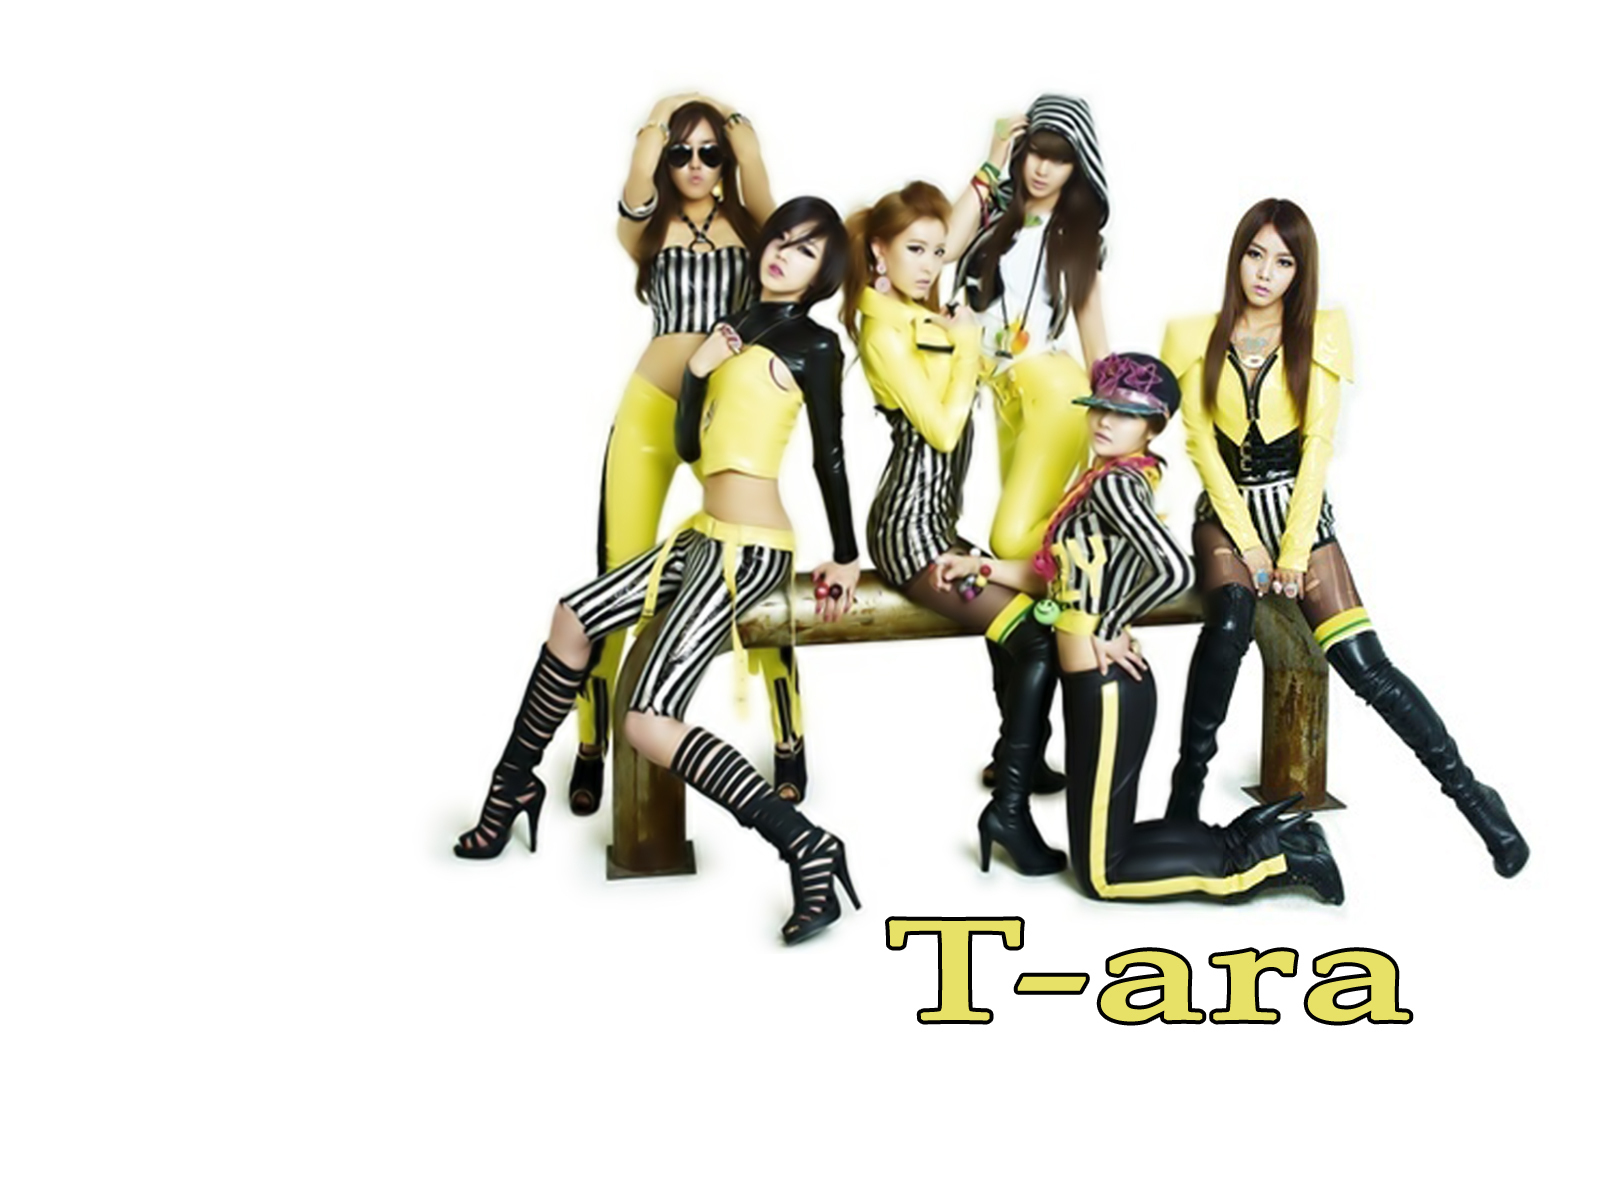 T ara wallpaper and background image 1600x1200 id 533819 wallpaper abyss - T ara wallpaper hd ...